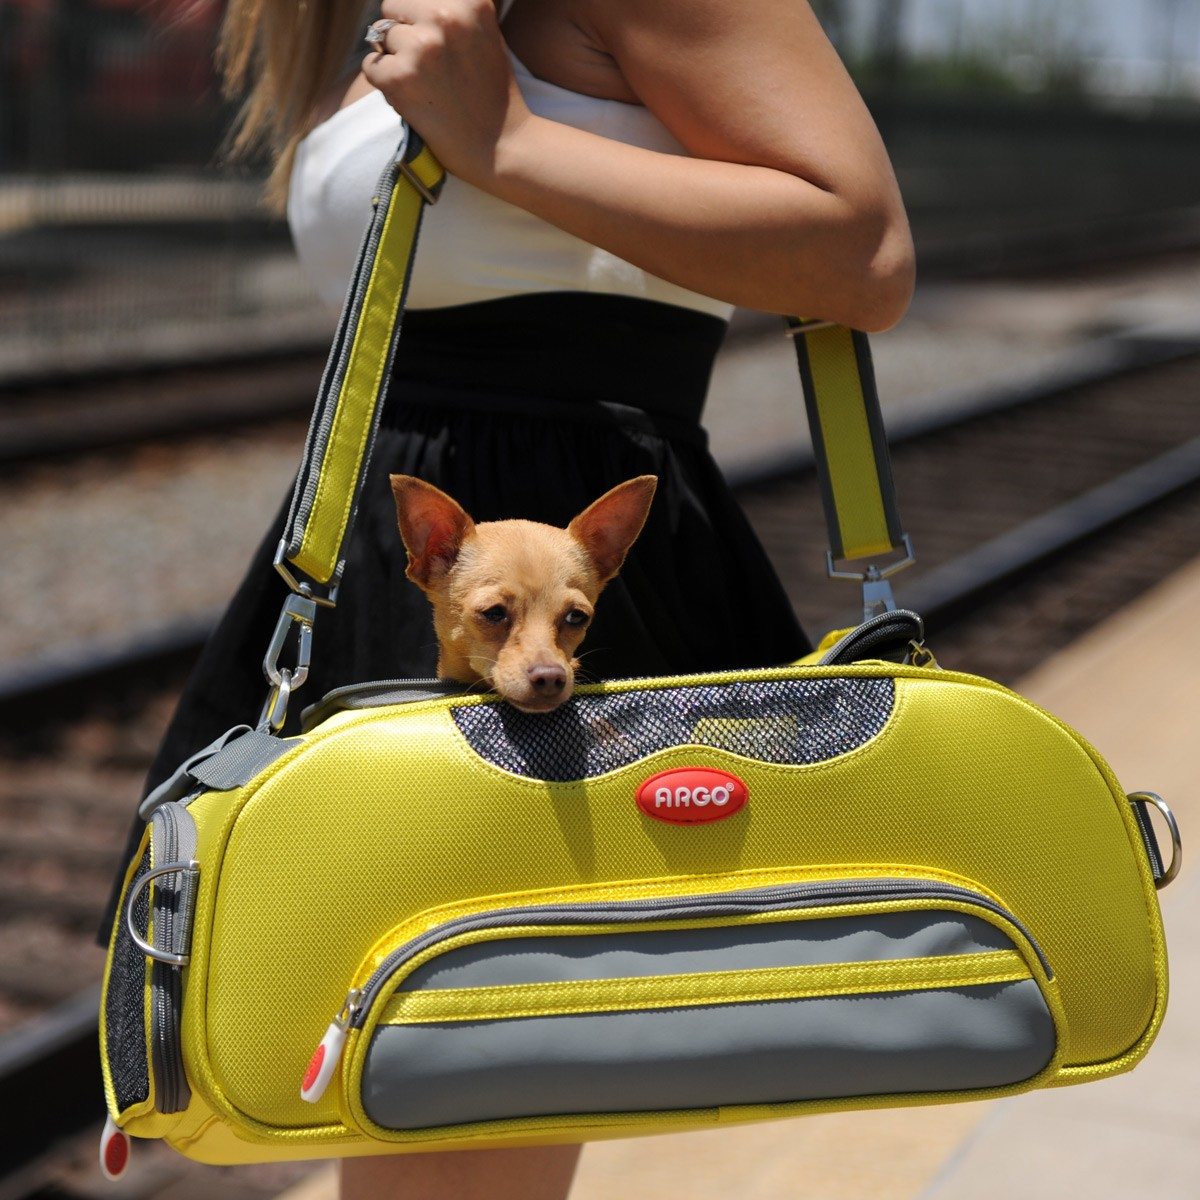 8a3a02f570 ARGO Aero-Pet Airline Approved Carrier Sherbet Yellow Small - 18.5 in · Zoom